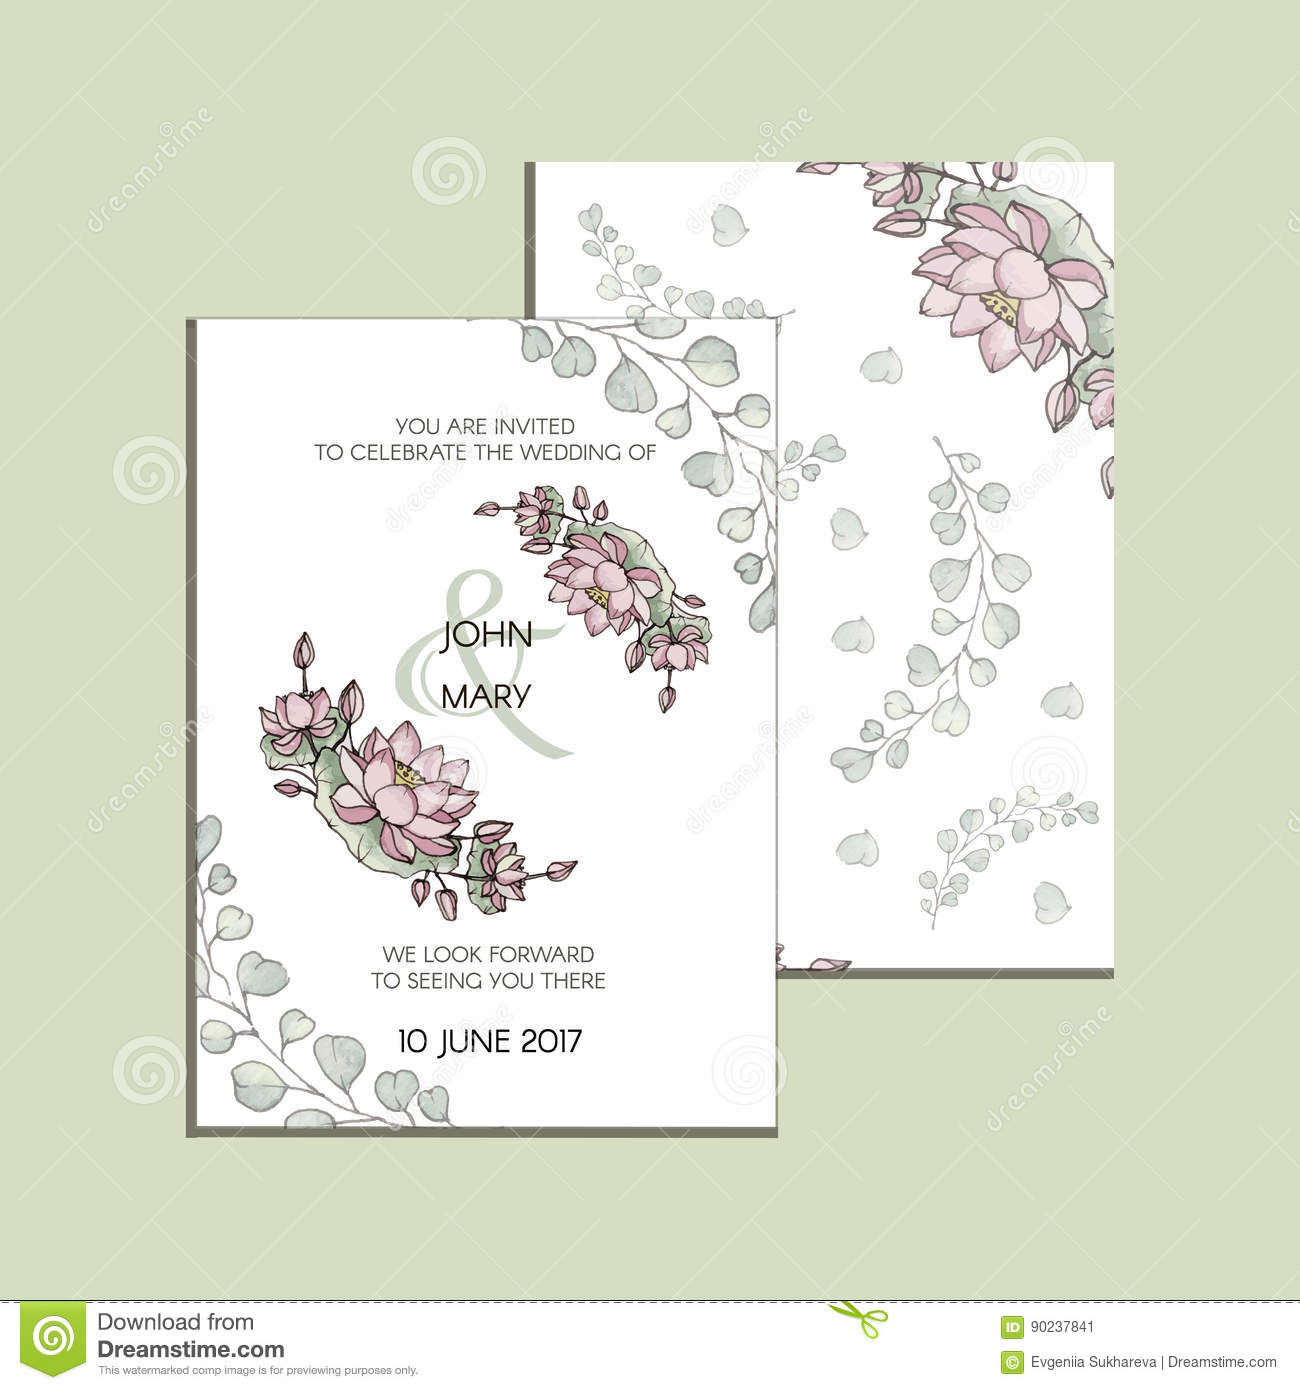 Vector Invitation With Flowers Of Lotus Modern Wedding Collection